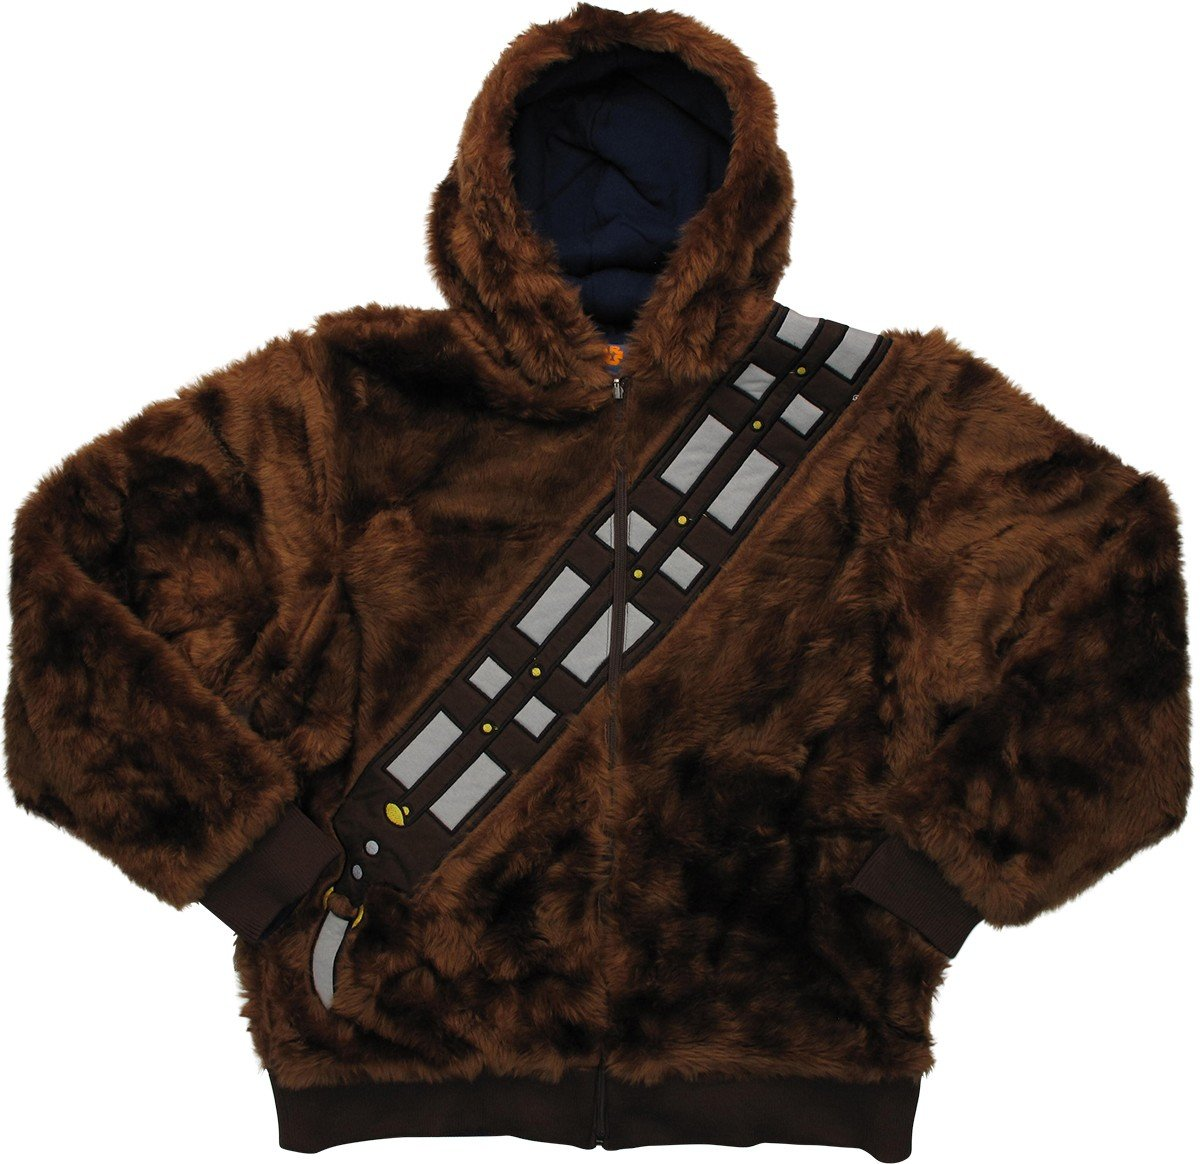 Star Wars Chewbacca Han Solo Reversible Hoodie X-Large by Philcos (Image #1)